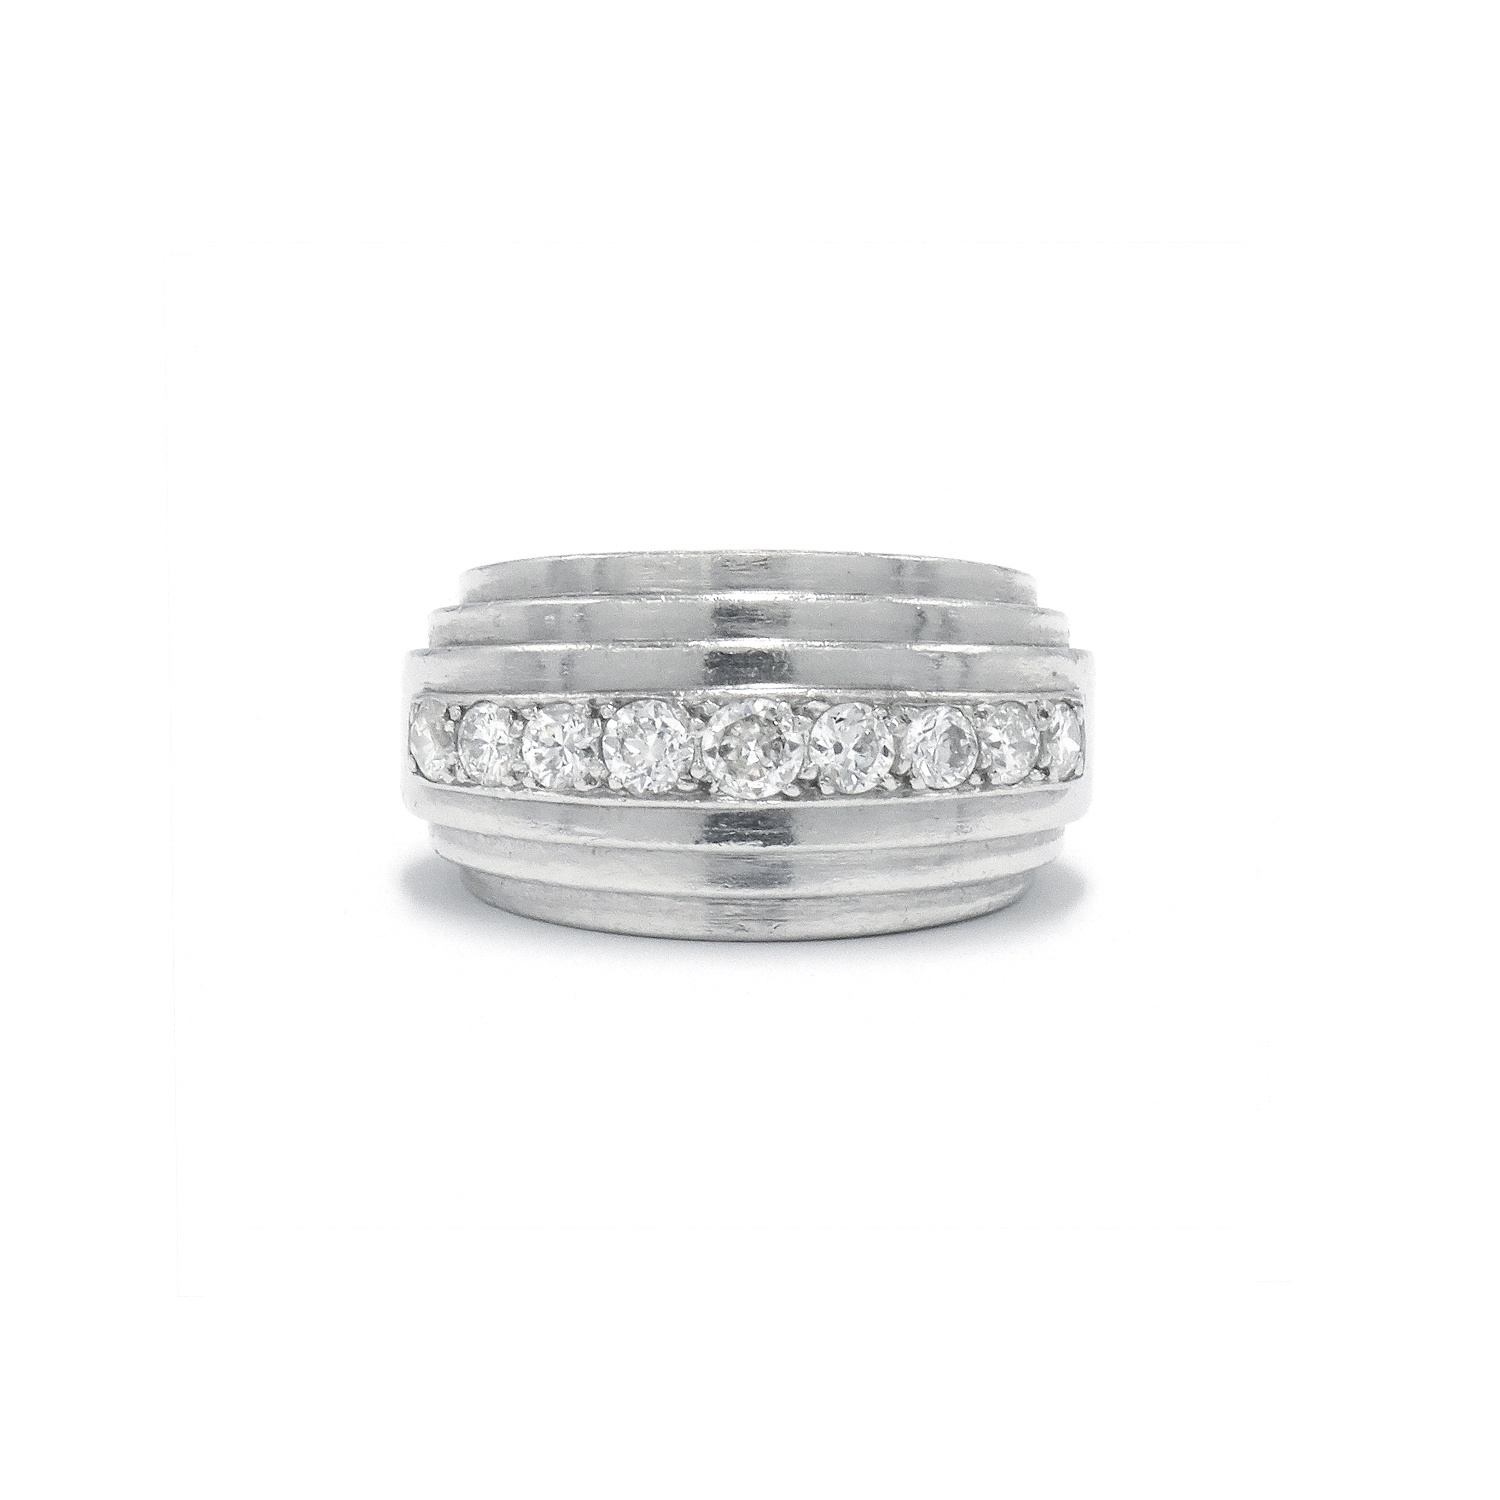 1930s Platinum and Diamond Ring by Rene Boivin Style R-38749-FL-0-0